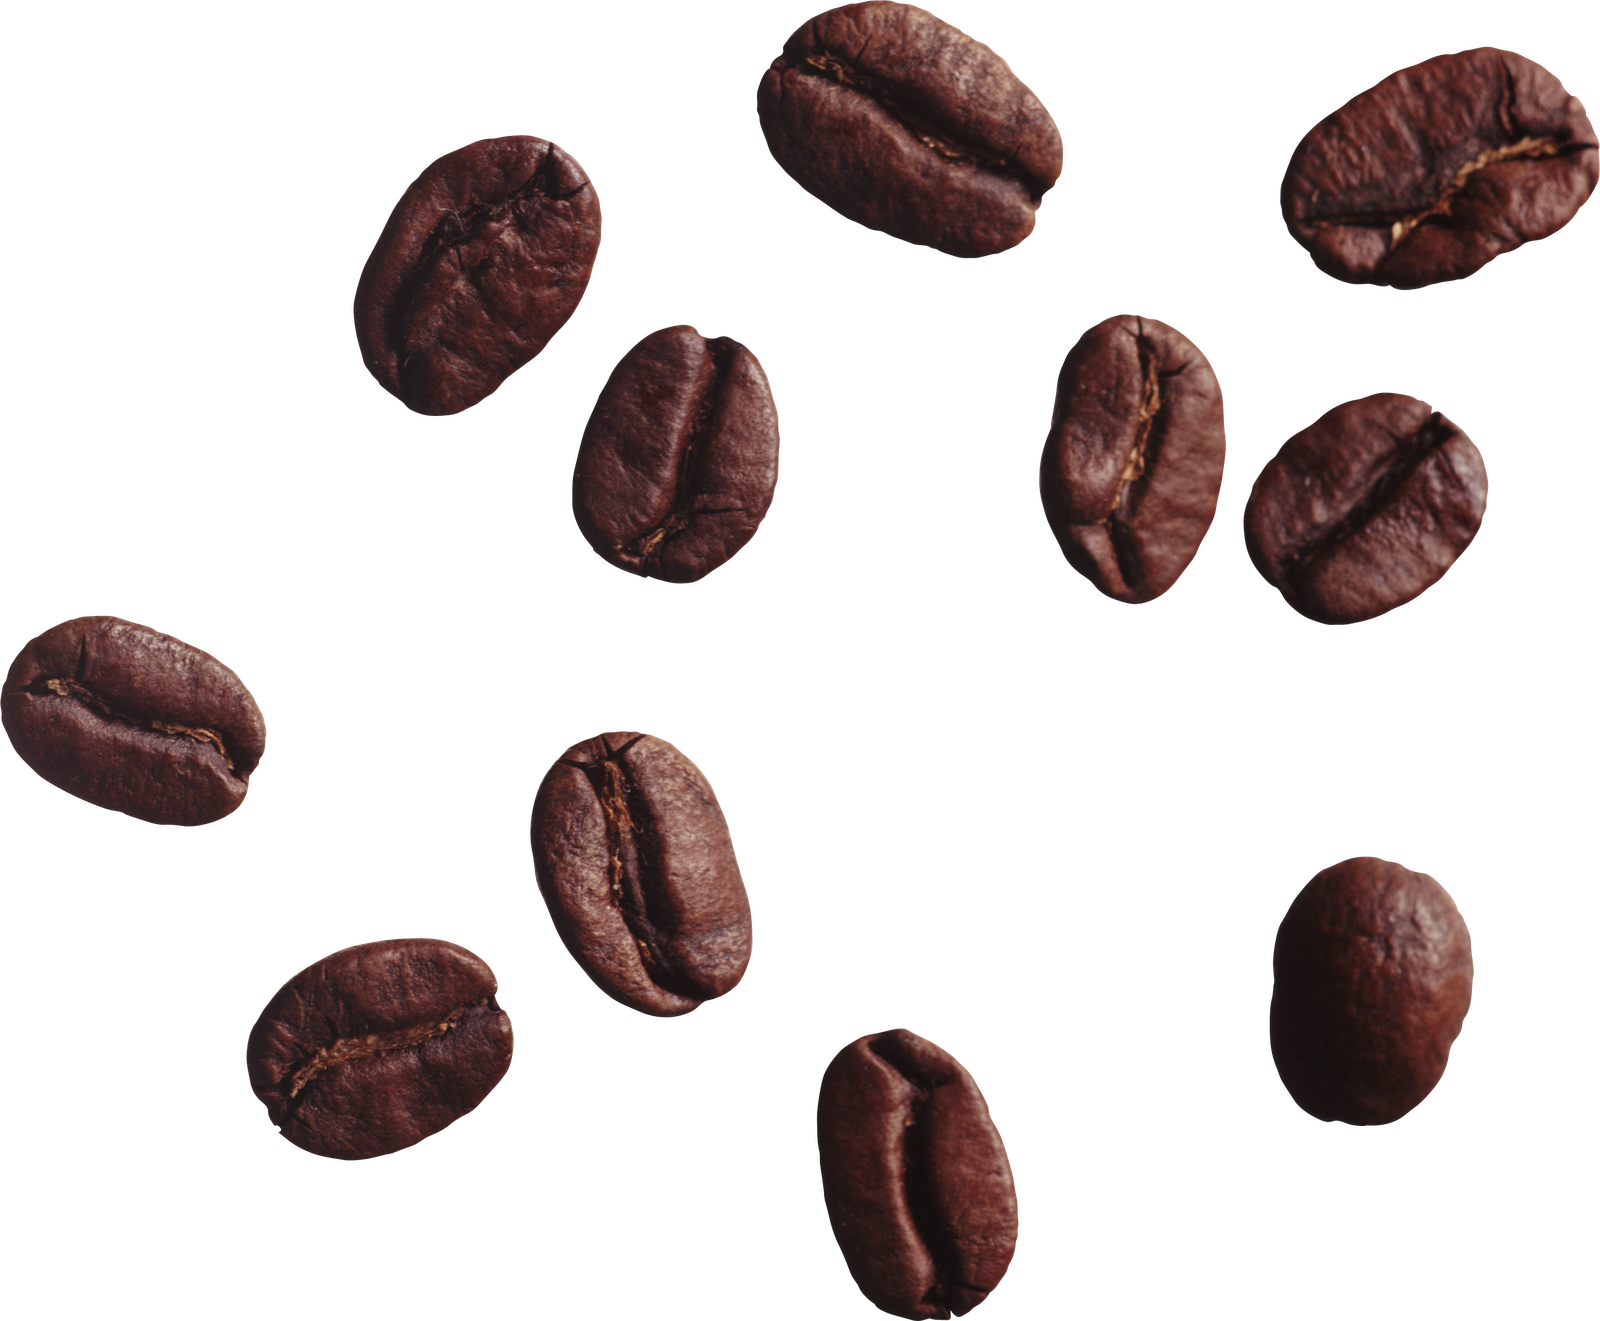 Coffee grain png. Beans images free download